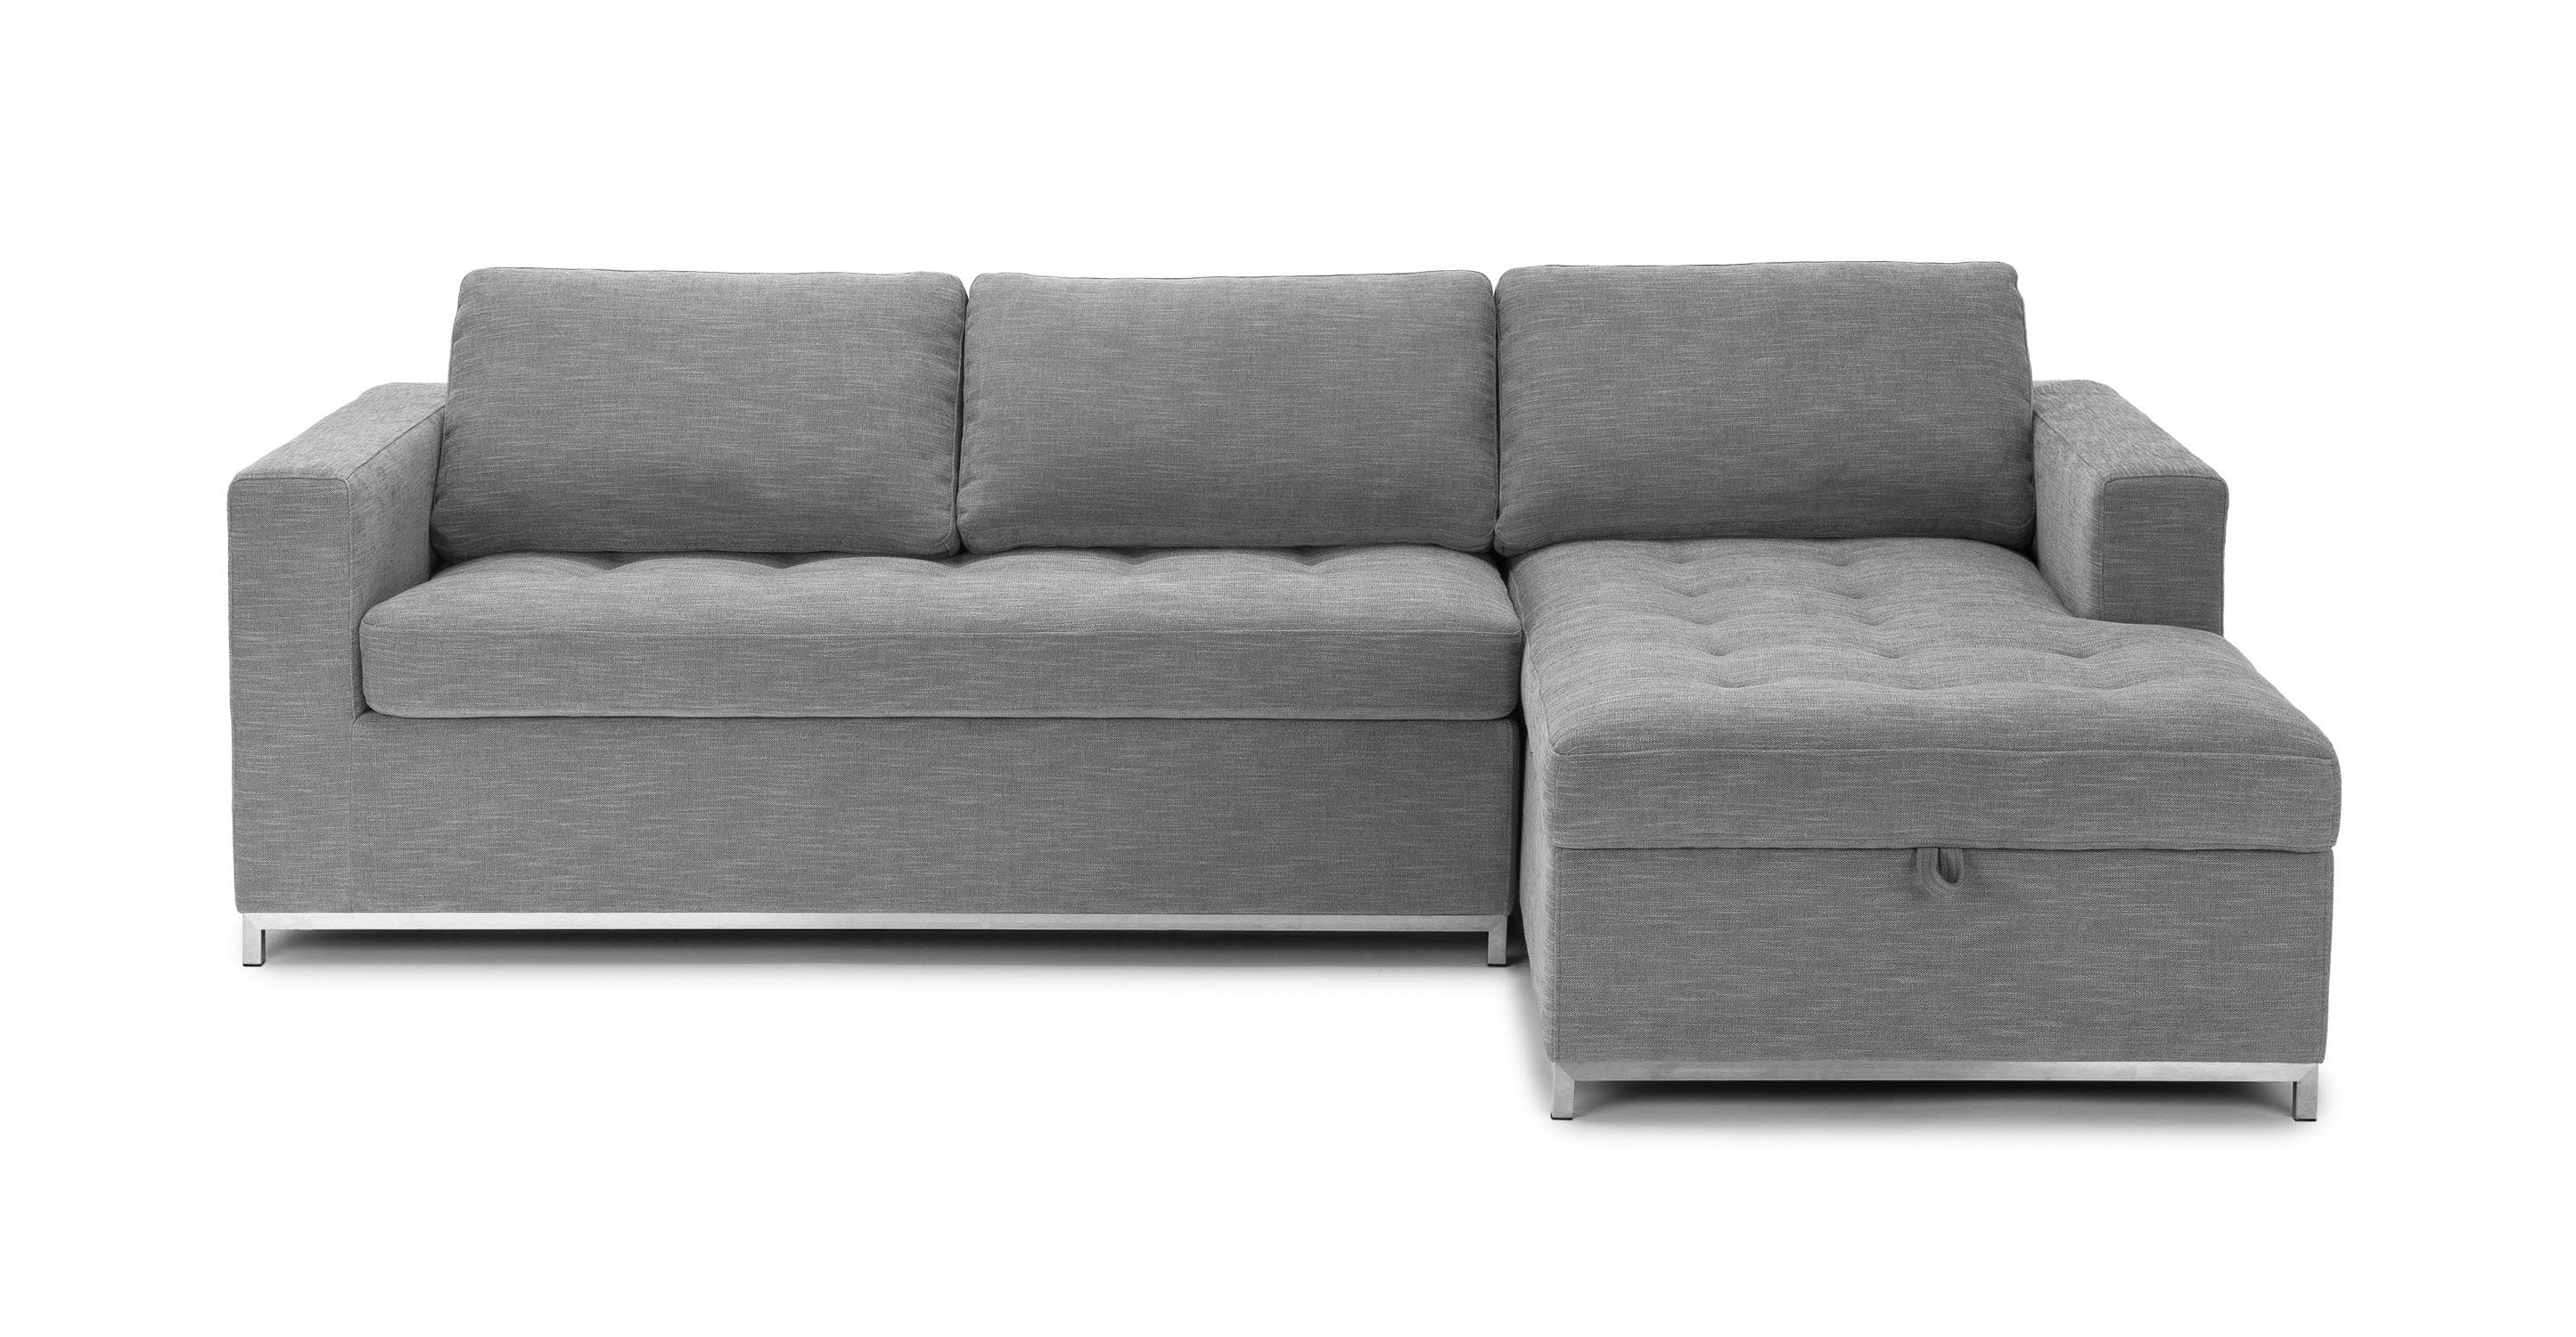 Article Soma Dawn Gray Right Sleeper Sectional Sofa